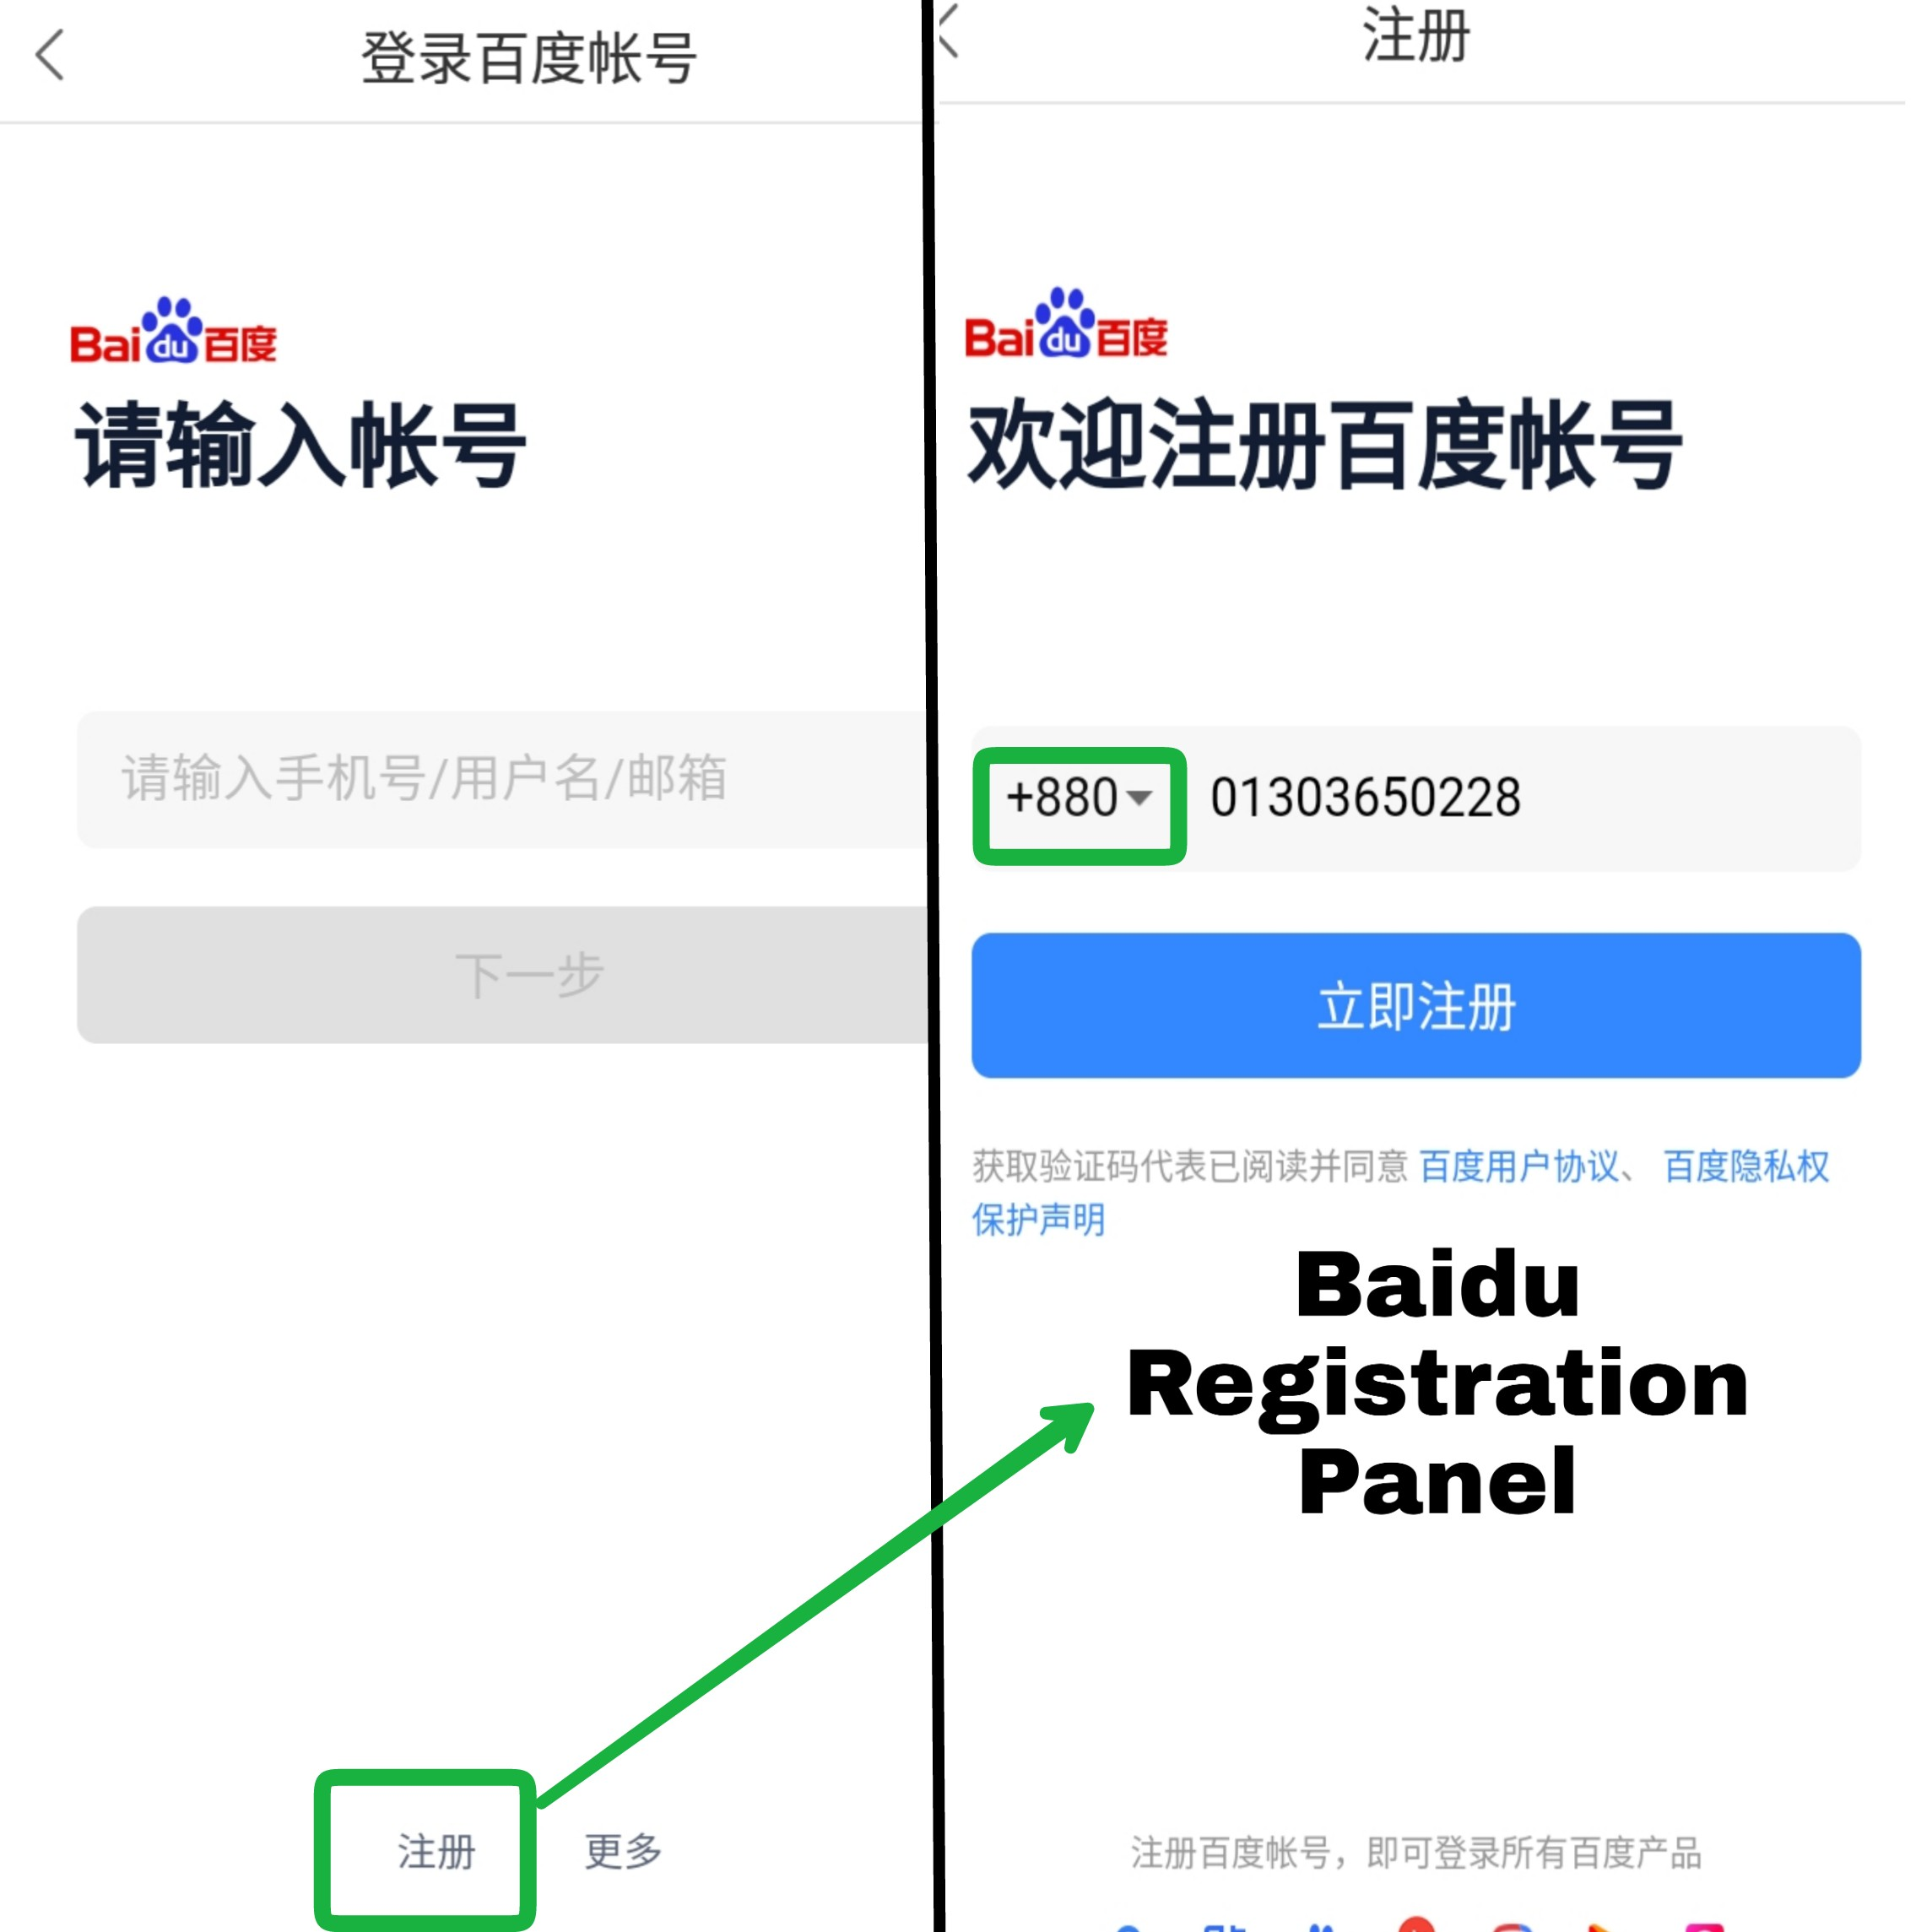 How To Register/Create Baidu Account Without Phone Outside China